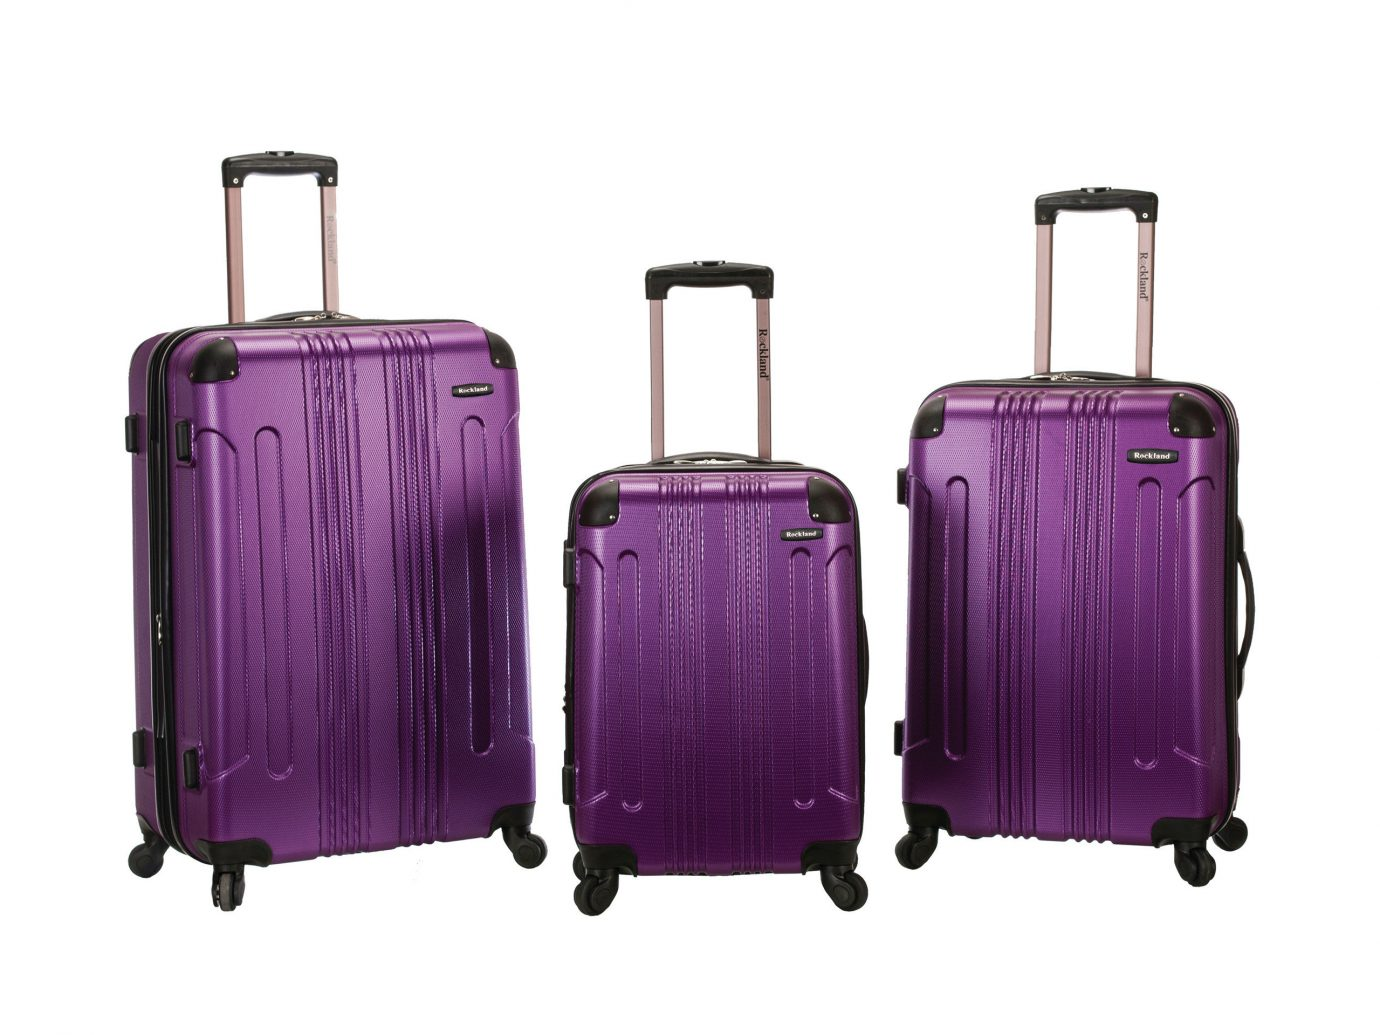 Rockland Sonic Luggage Set, Packing Tips Style + Design Travel Shop luggage suitcase purple violet piece product bag hand luggage product design luggage & bags magenta baggage brand colored different